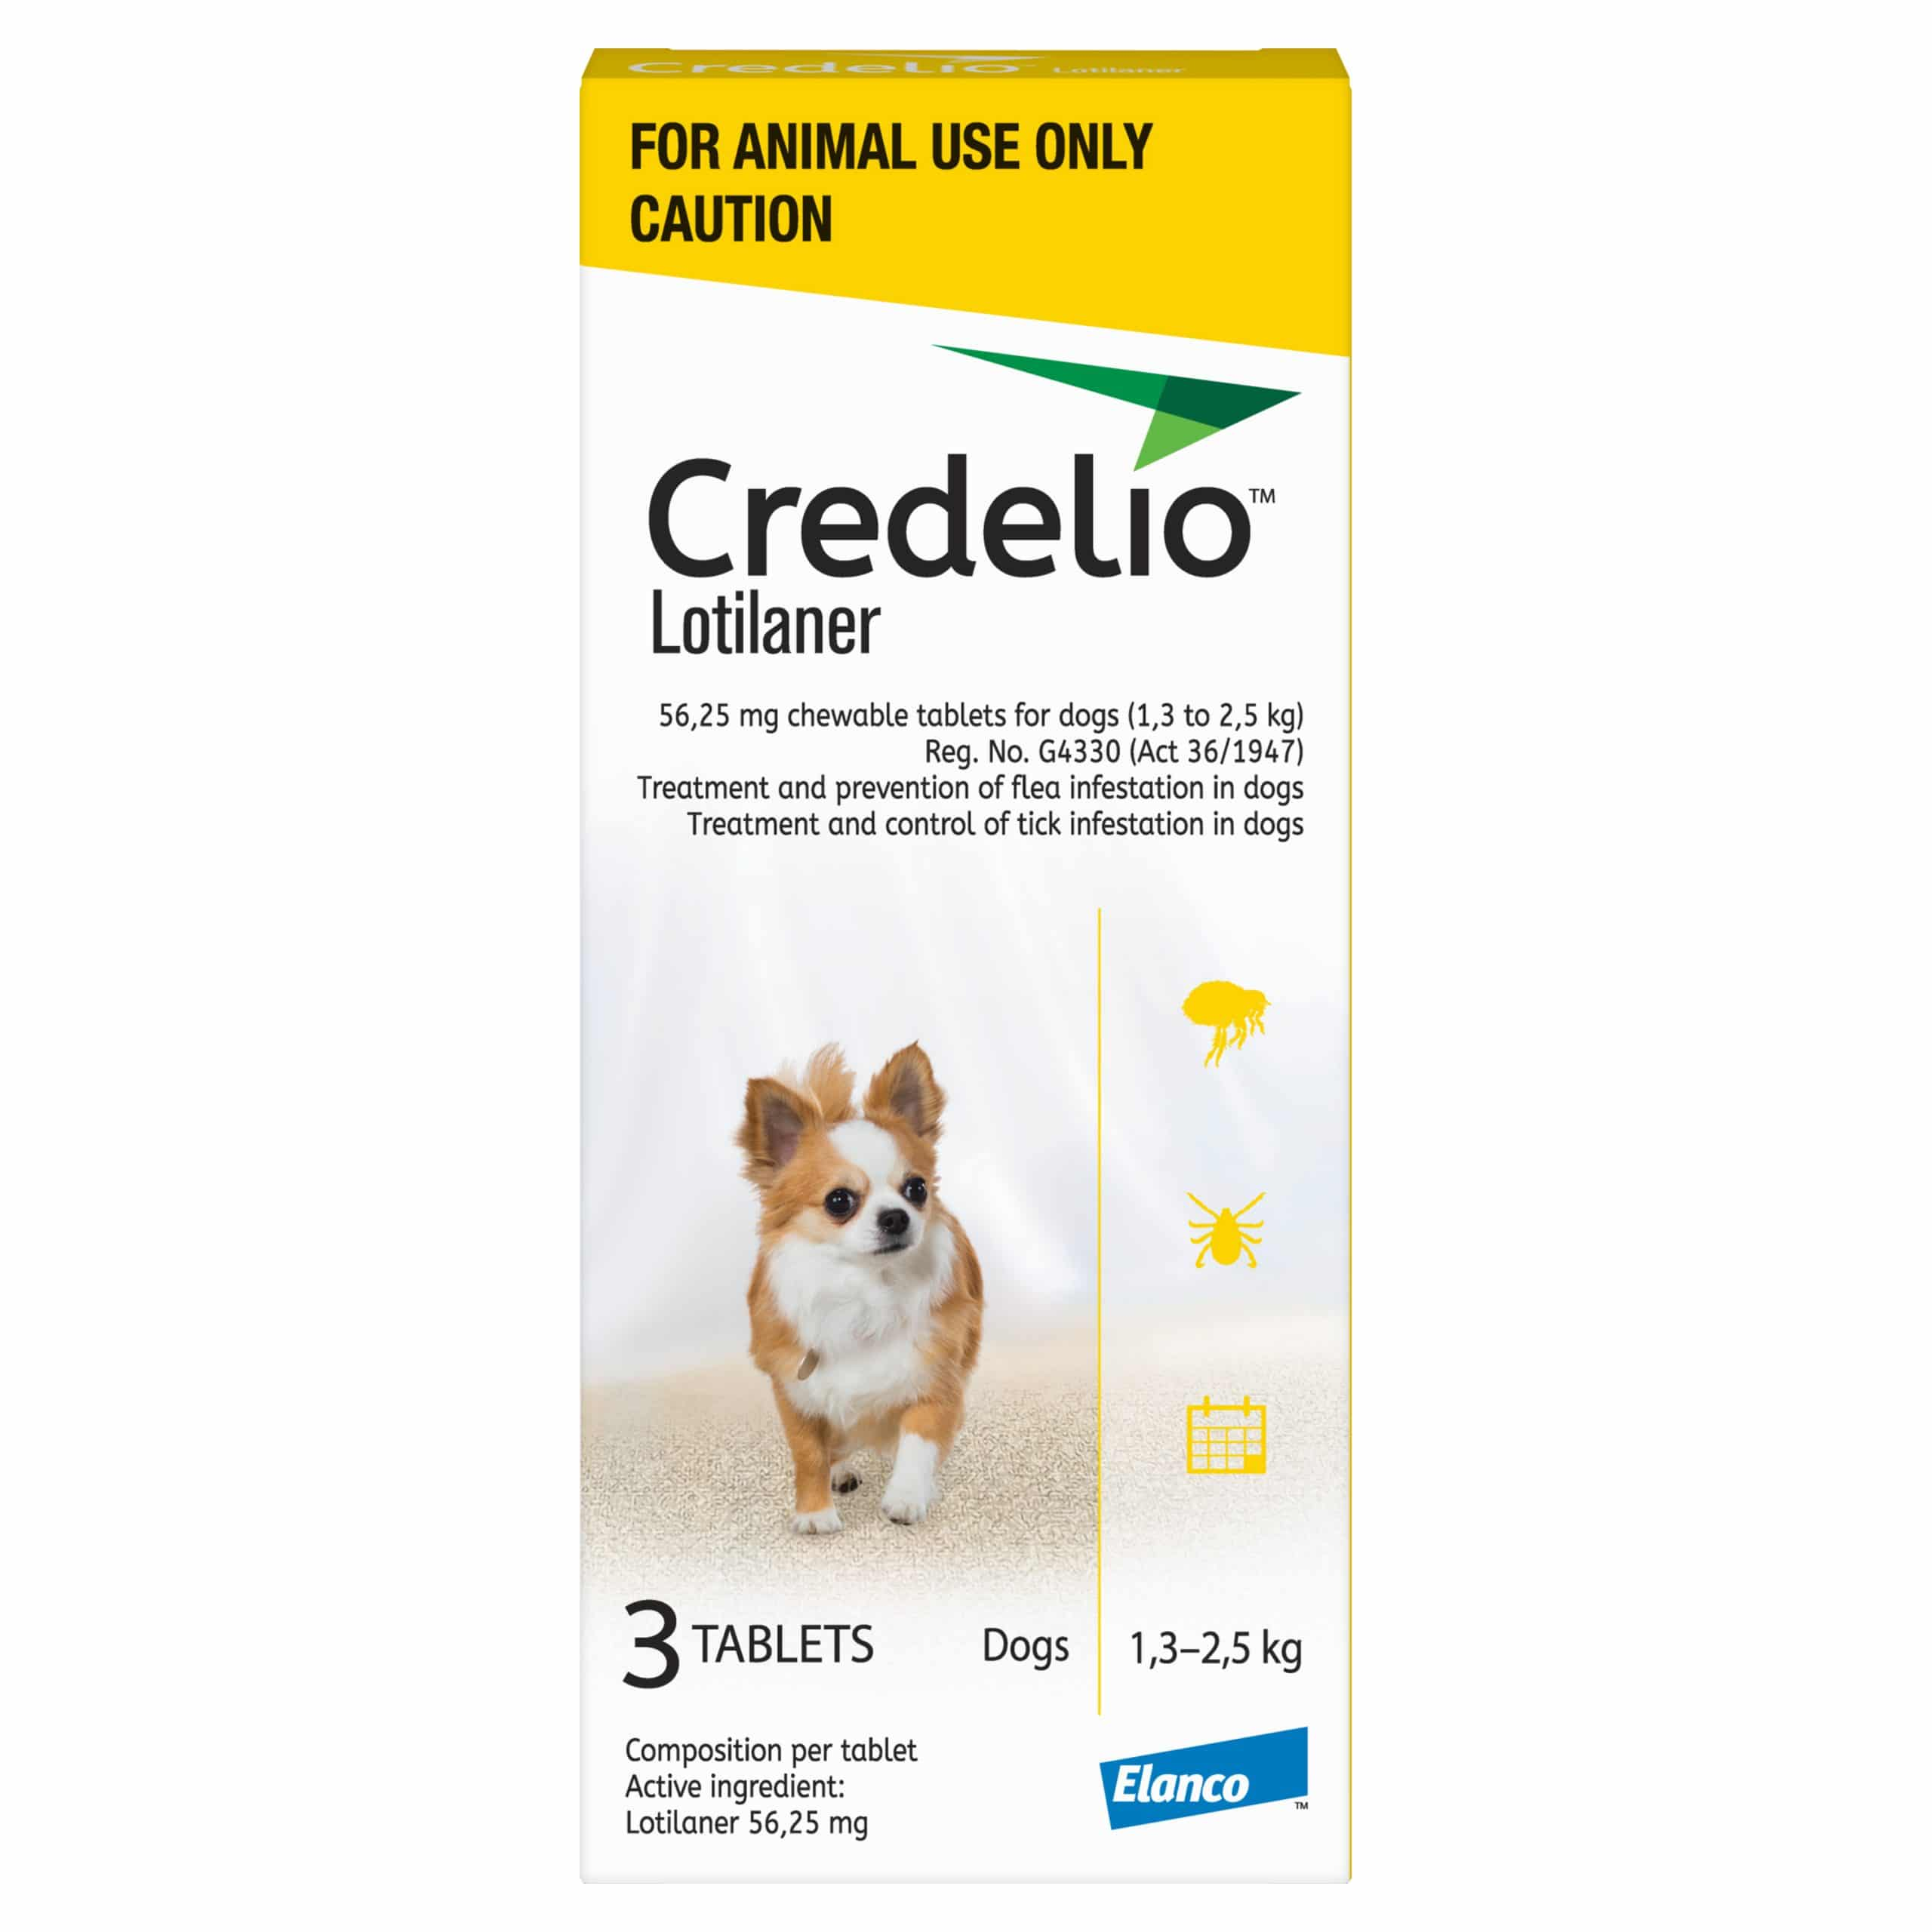 CREDELIO TOY 56.25MG (1.3 - 2.5KG) YELLOW *ON SPECIAL - PRODUCT EXPIRY DATE 08/2021 - WHILE STOCKS LAST*